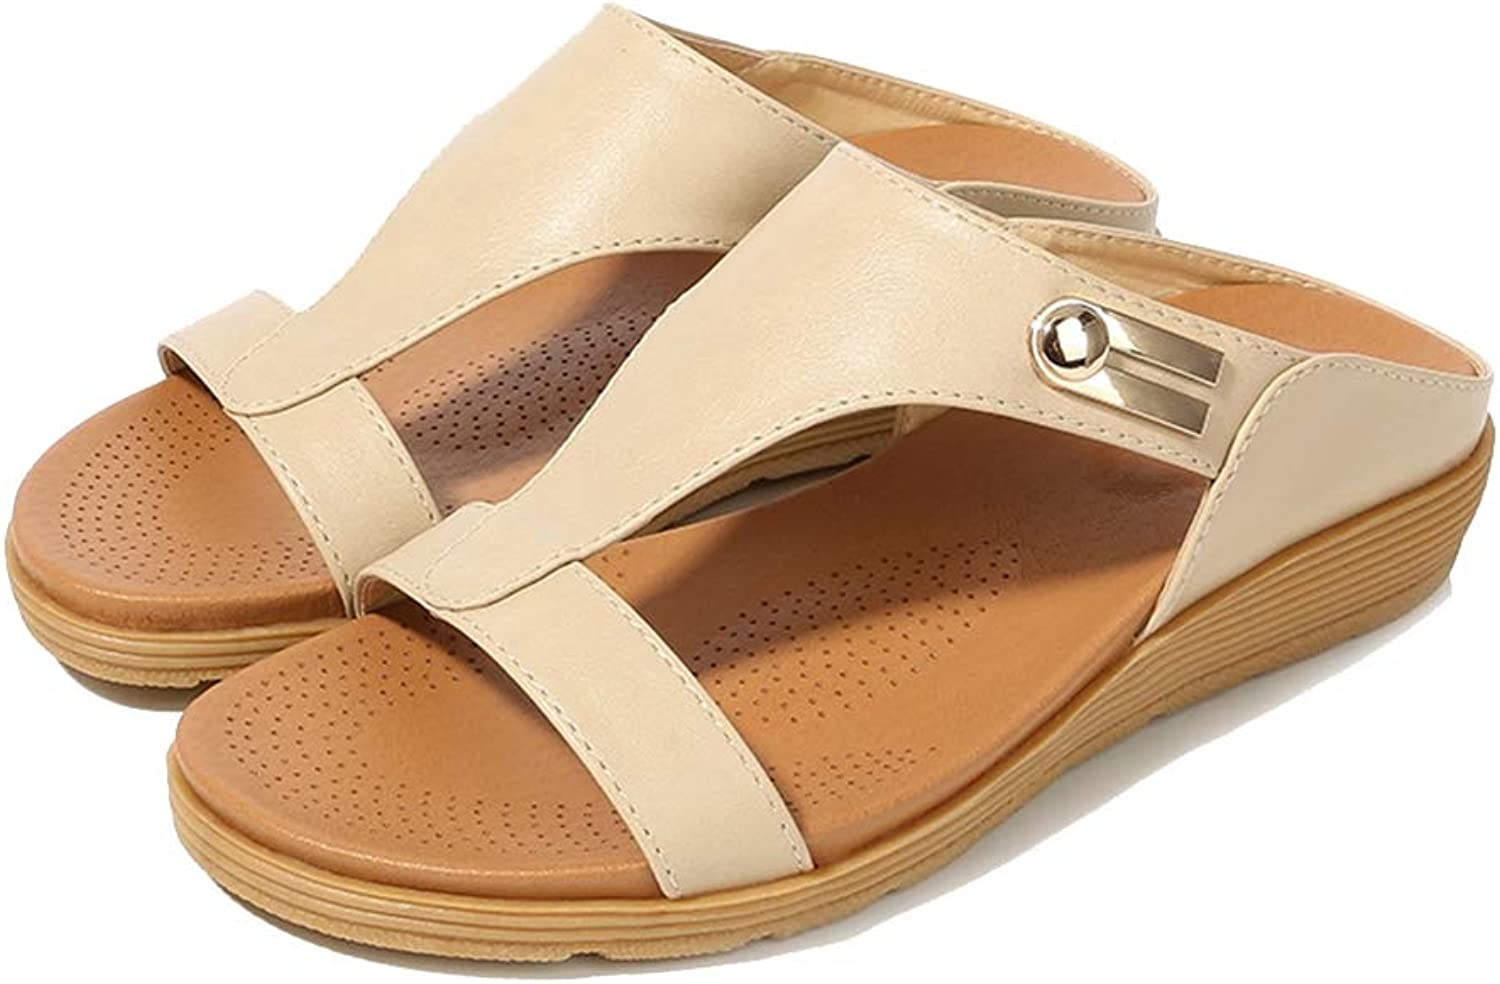 Women's Metal Buckle Round Head Sandals Open Toe Breathable Flat Sandals TPR Sole Non-Slip Wear Resistant Summer Indoor, Outdoor, Dress, Party